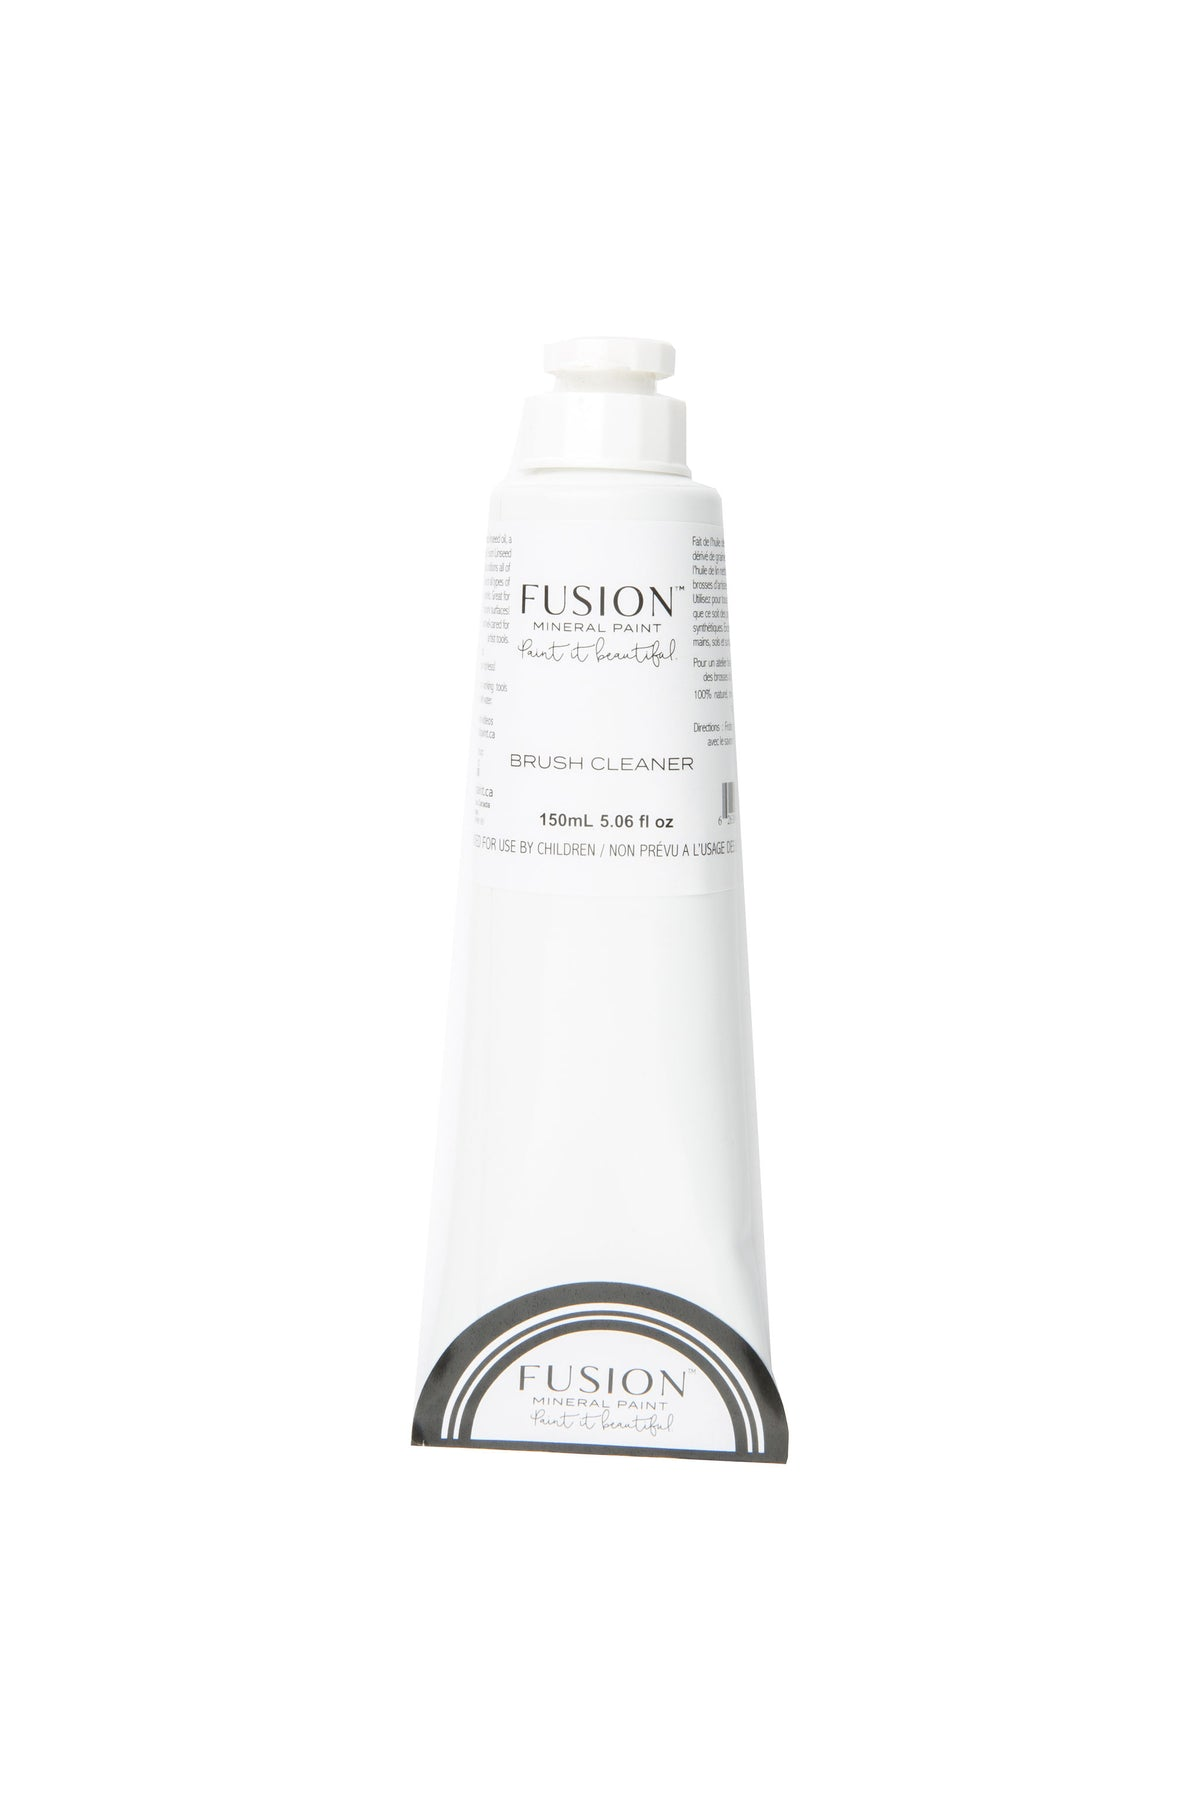 Fusion Mineral Paint Brush Cleaner